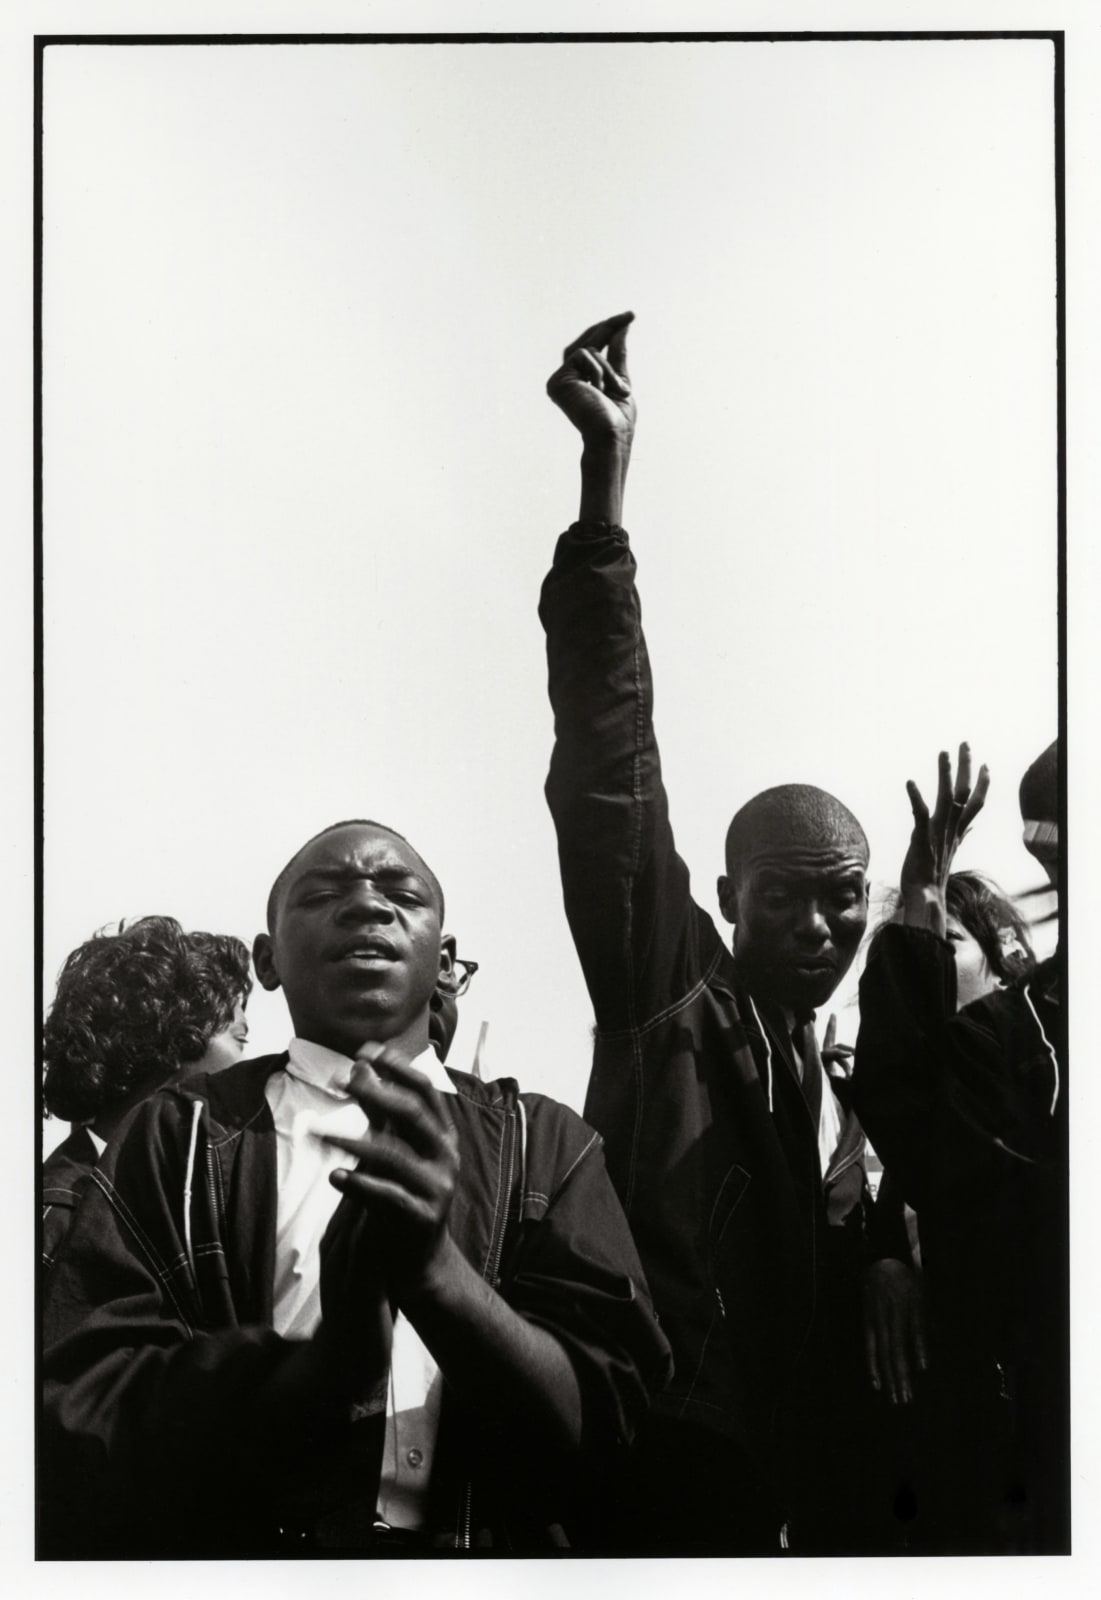 Danny Lyon - The March On Washington August 28, 1963